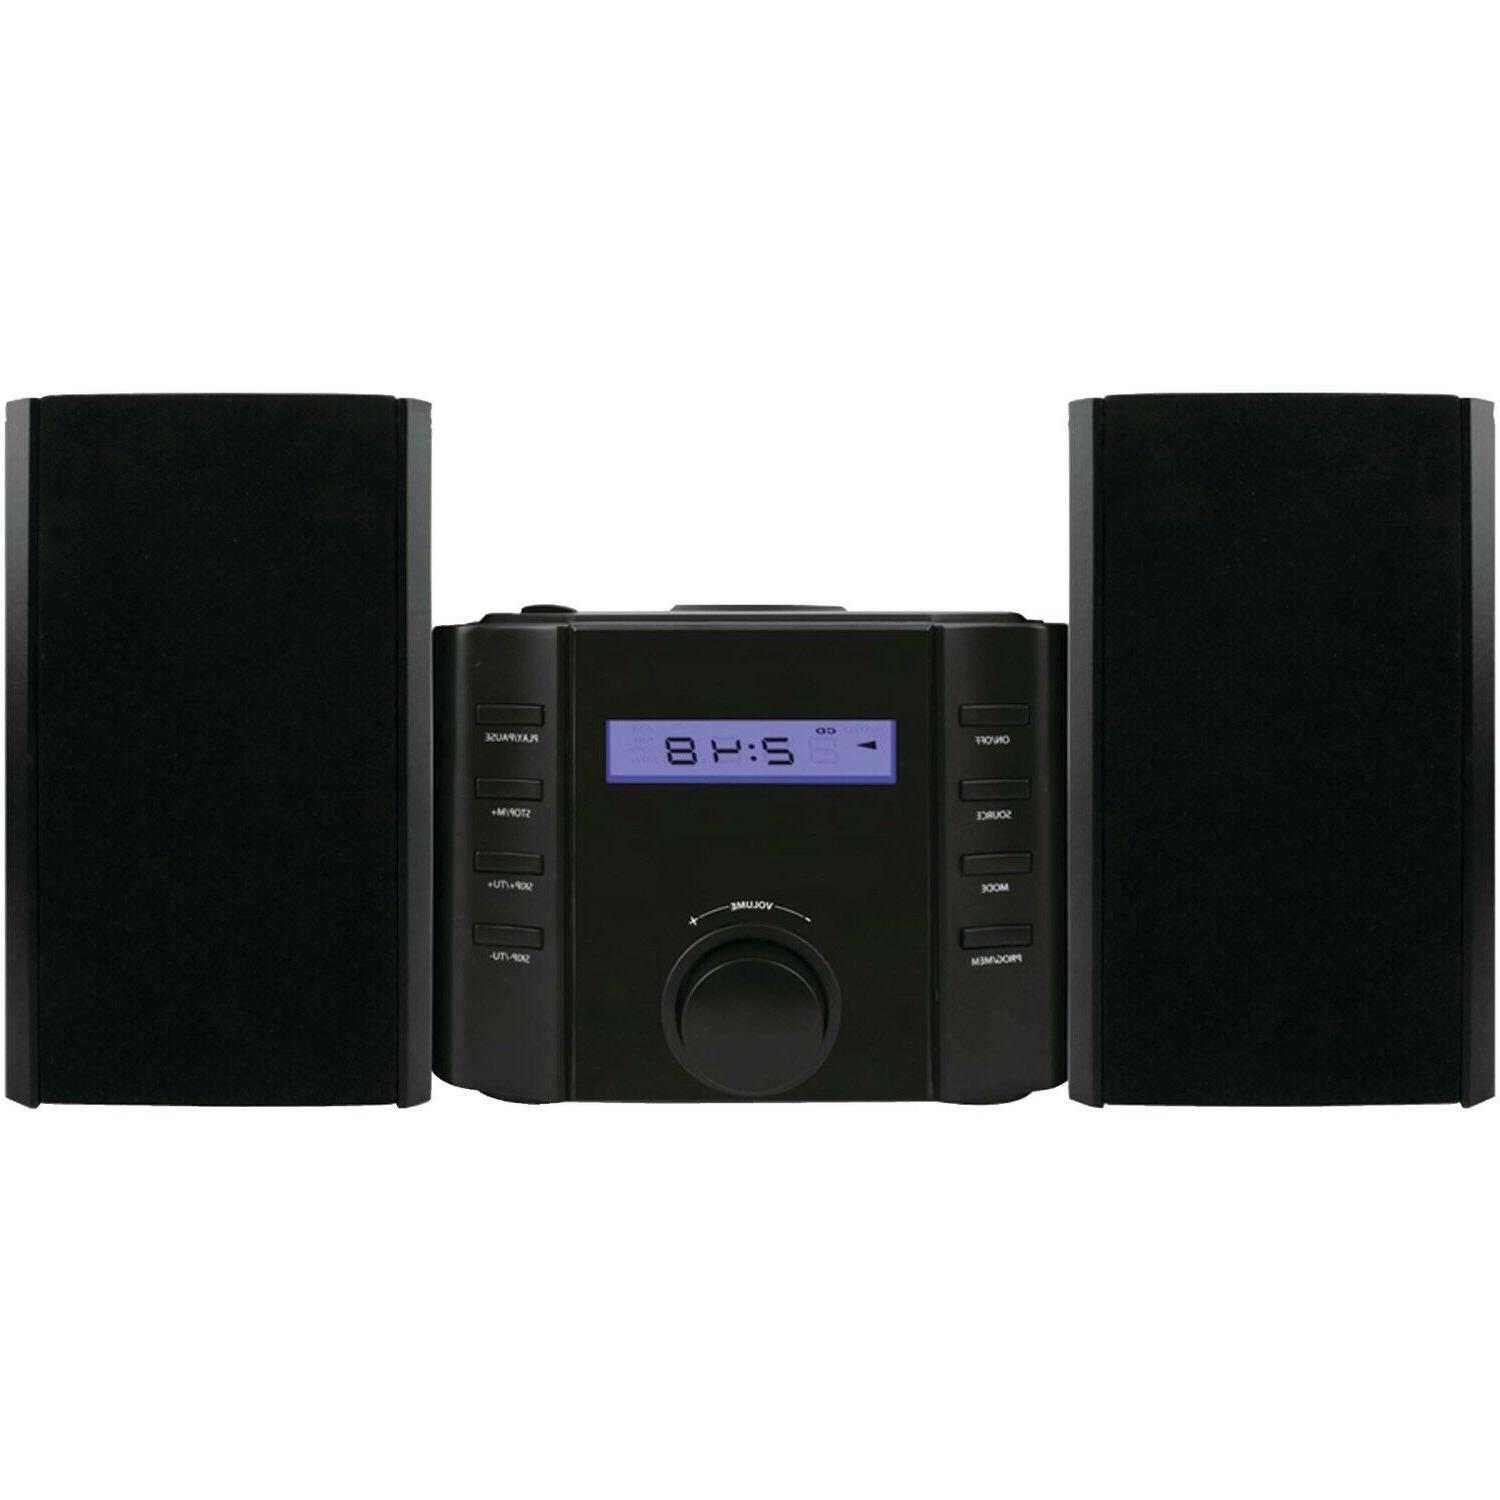 New Bluetooth Compact Shelf Stereo Music System CD Player AM